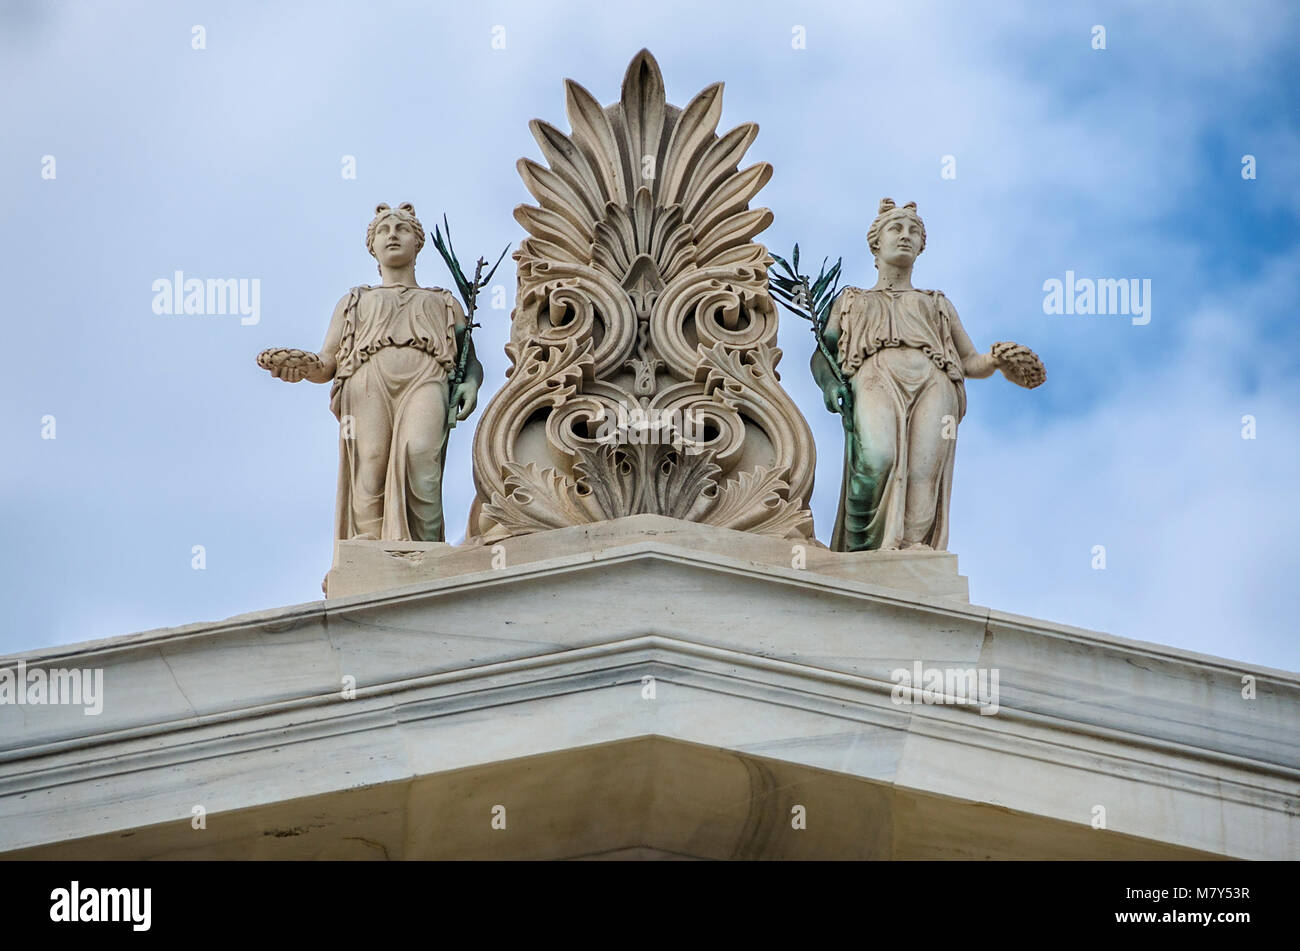 Sculptures, pediment on the roof of Zappeion megaron in Athens,Grrece - Stock Image